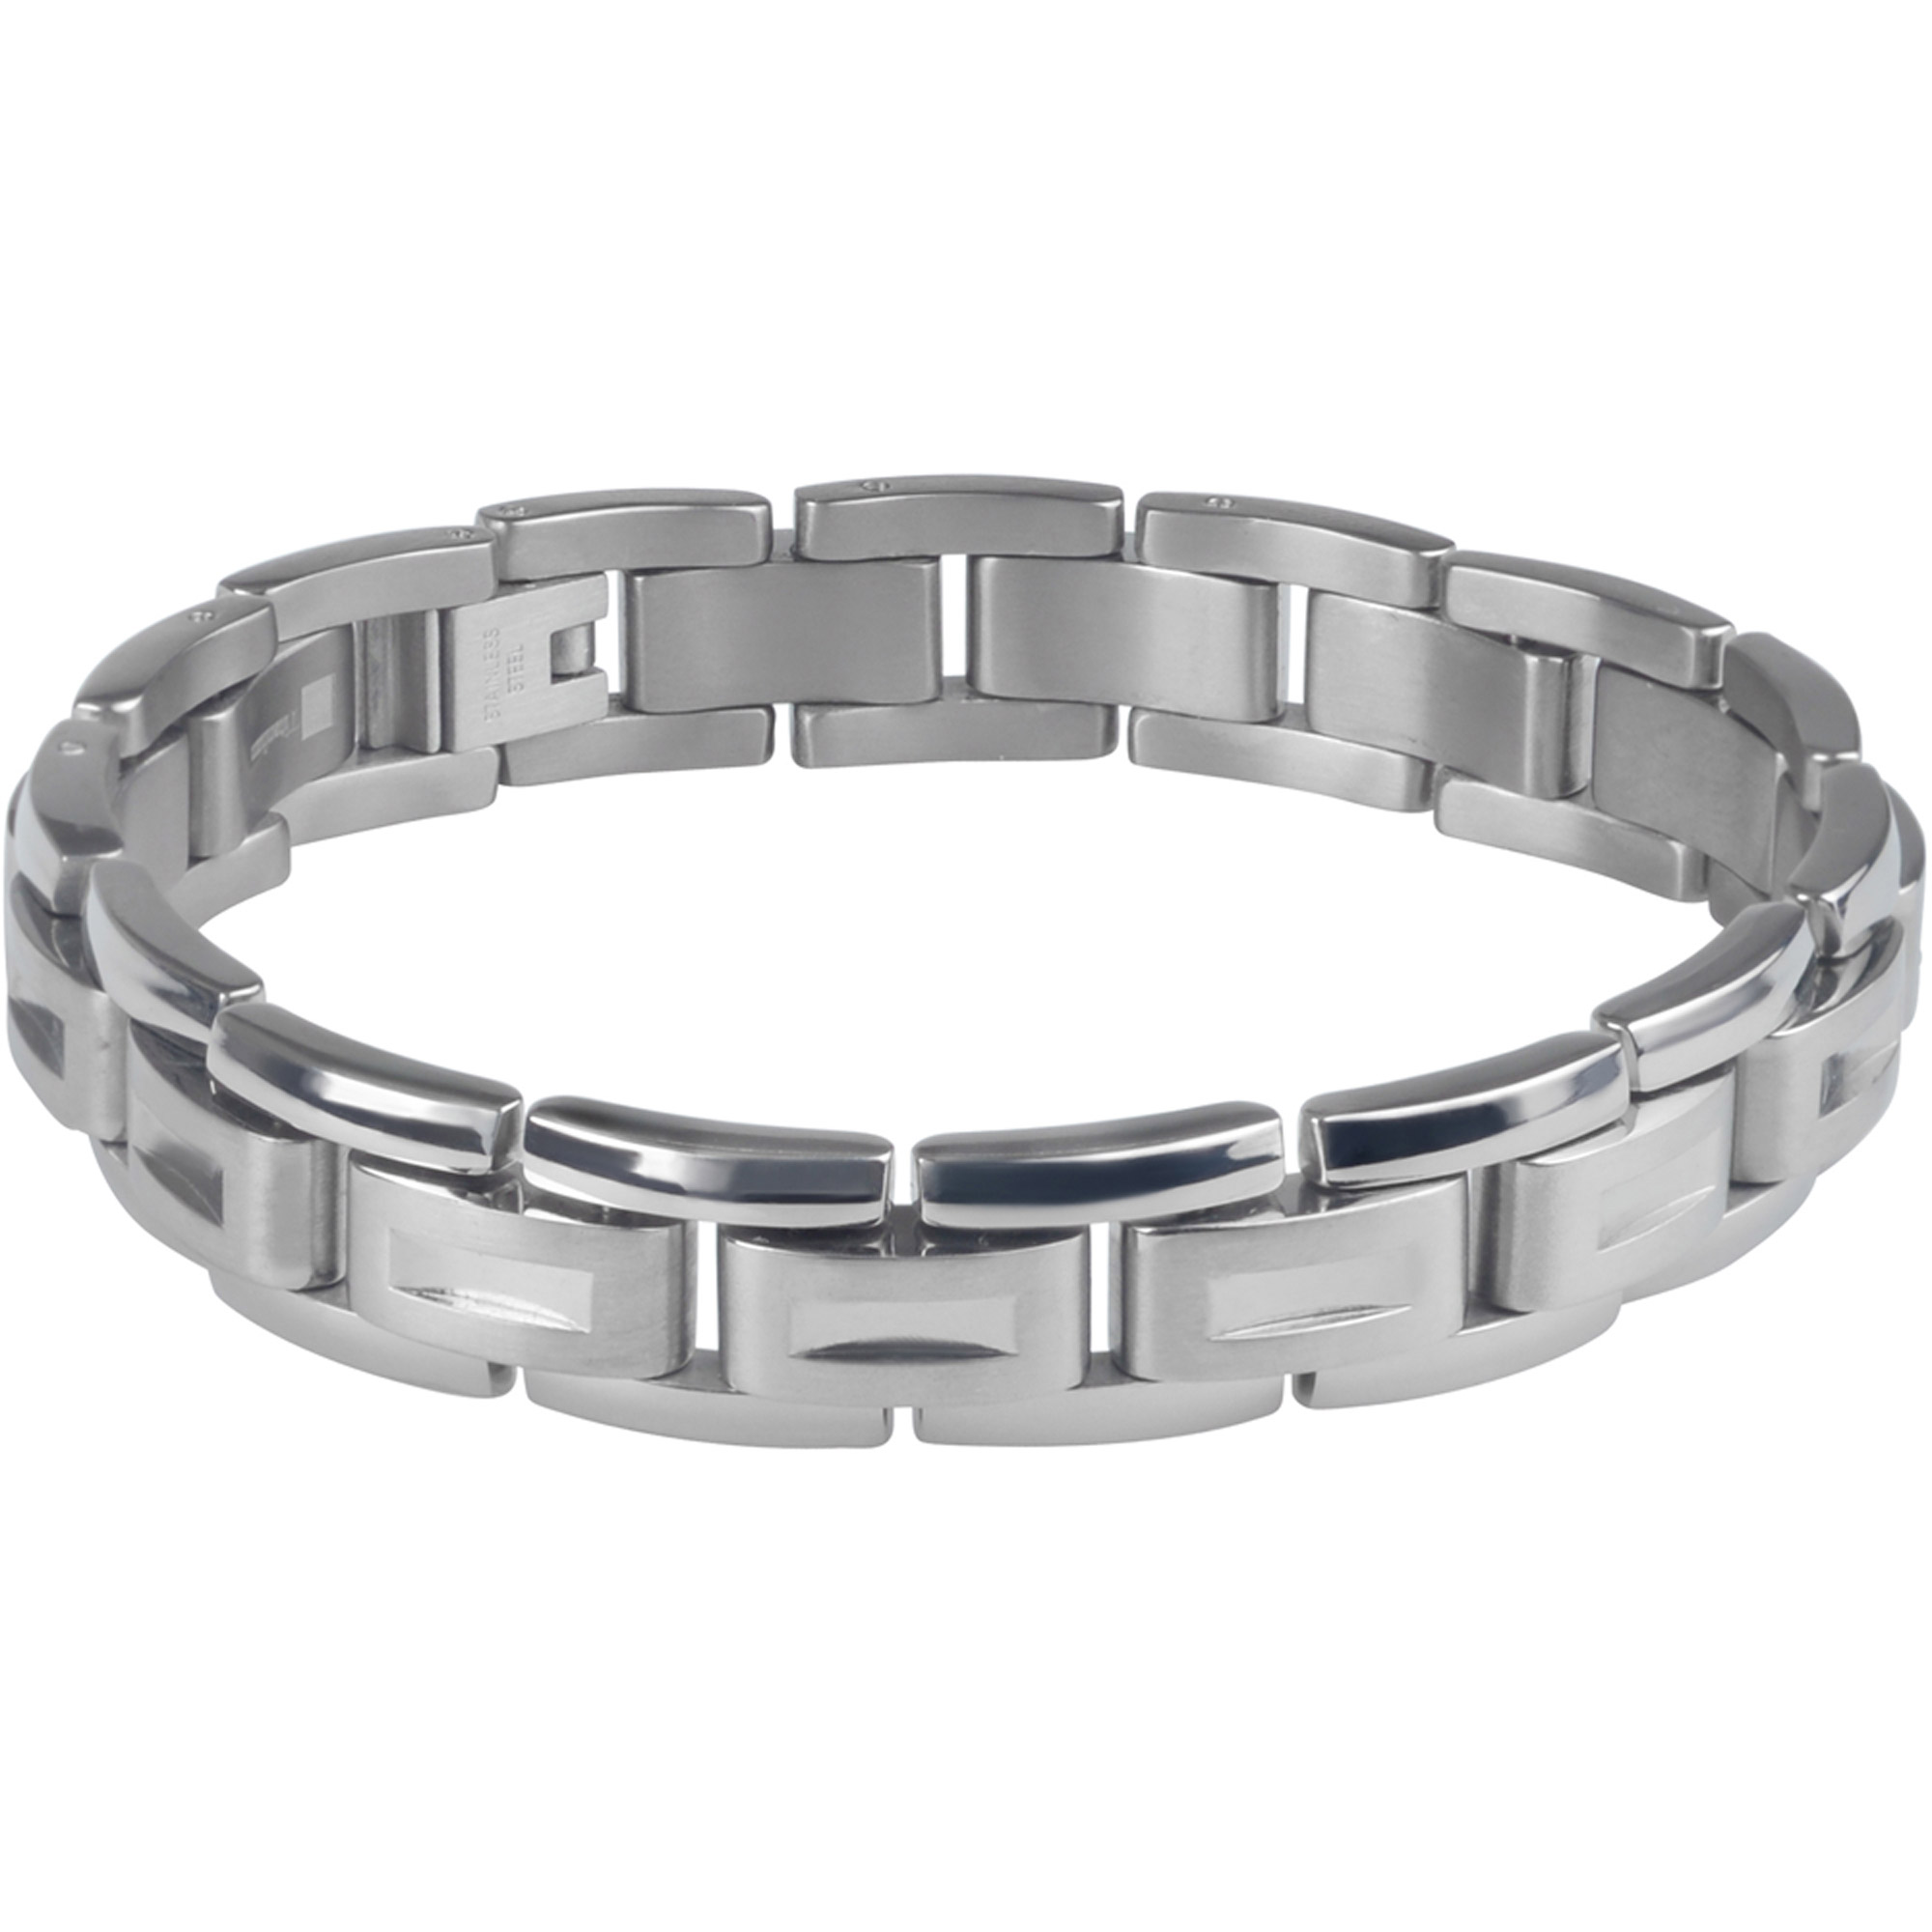 Daxx Men's Titanium Link Fashion Bracelet, 9""